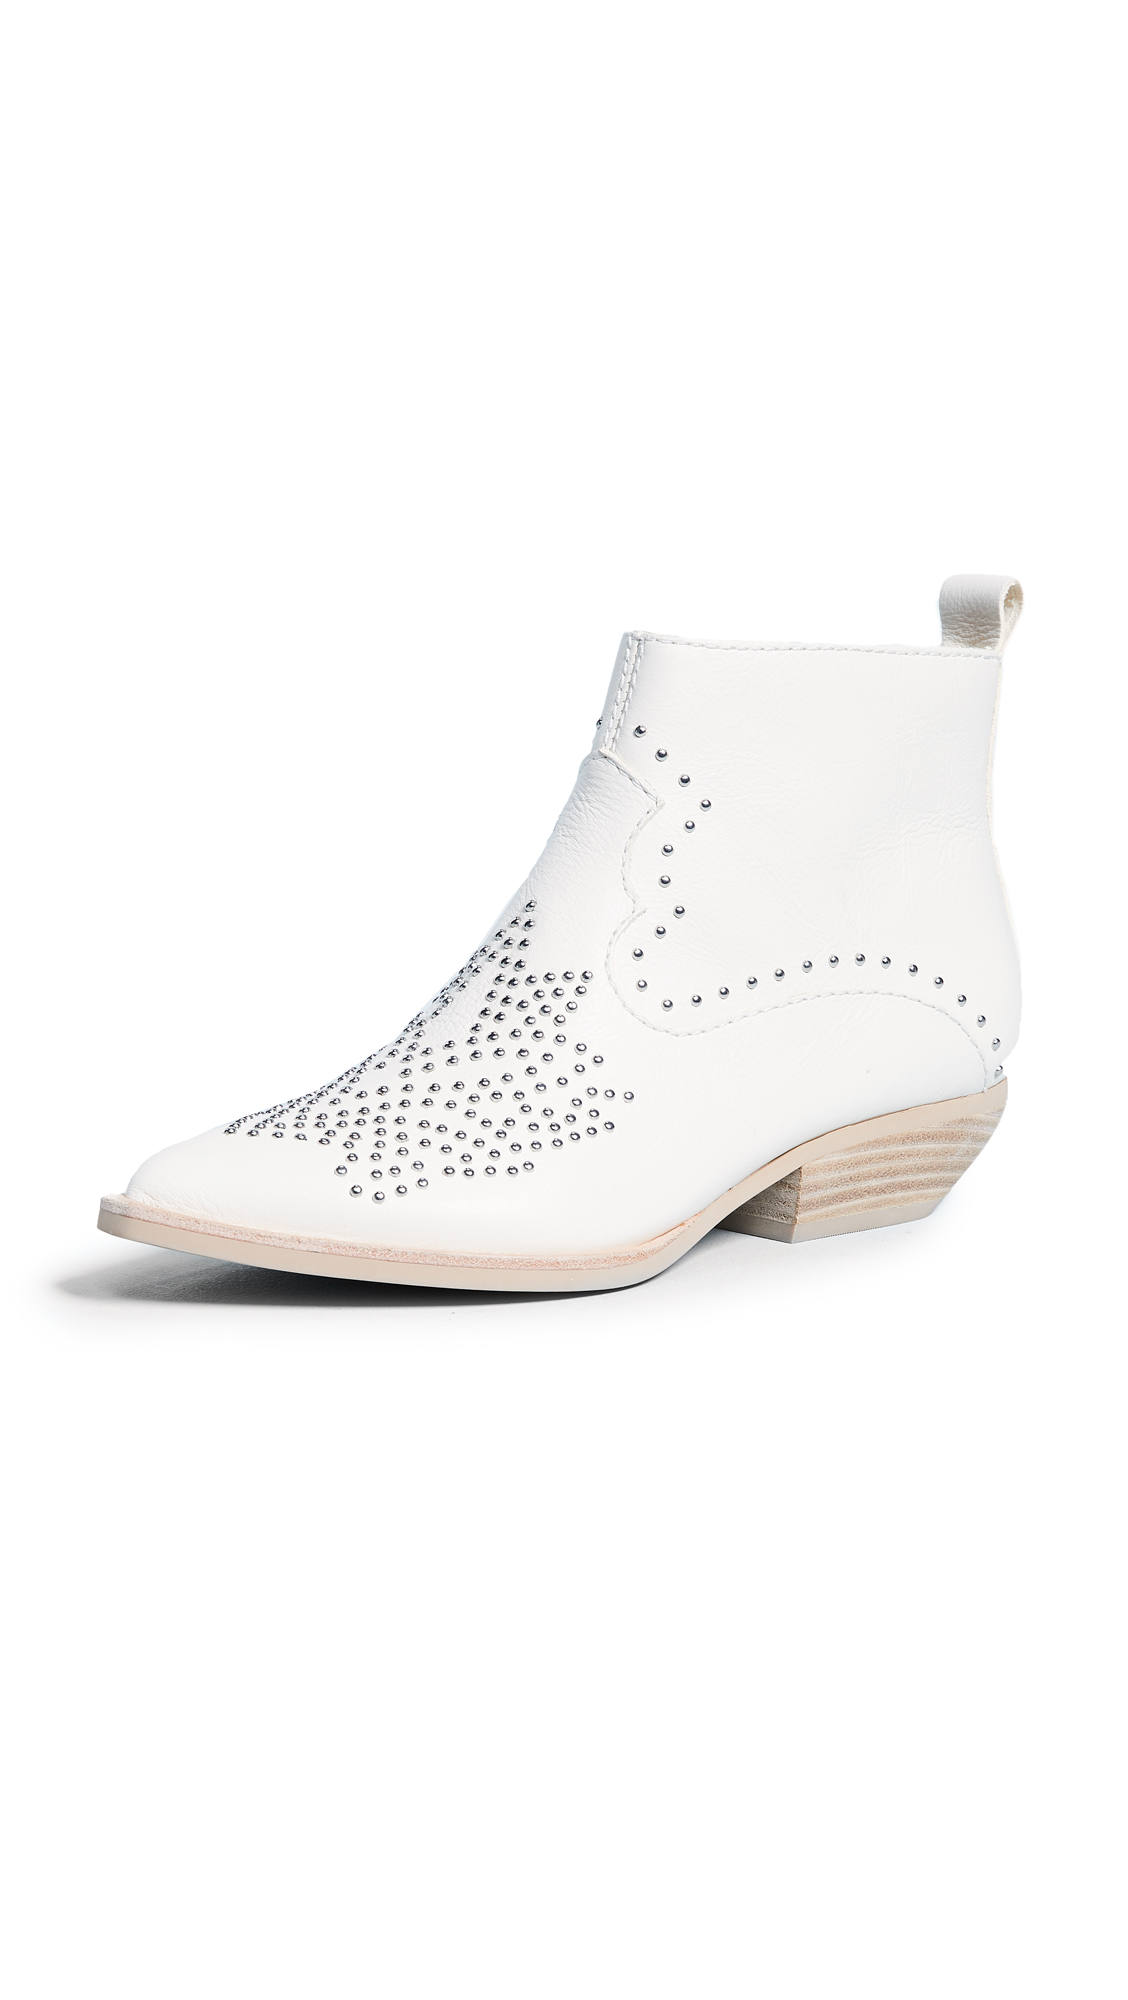 Dolce Vita Uma Western Booties - Off White